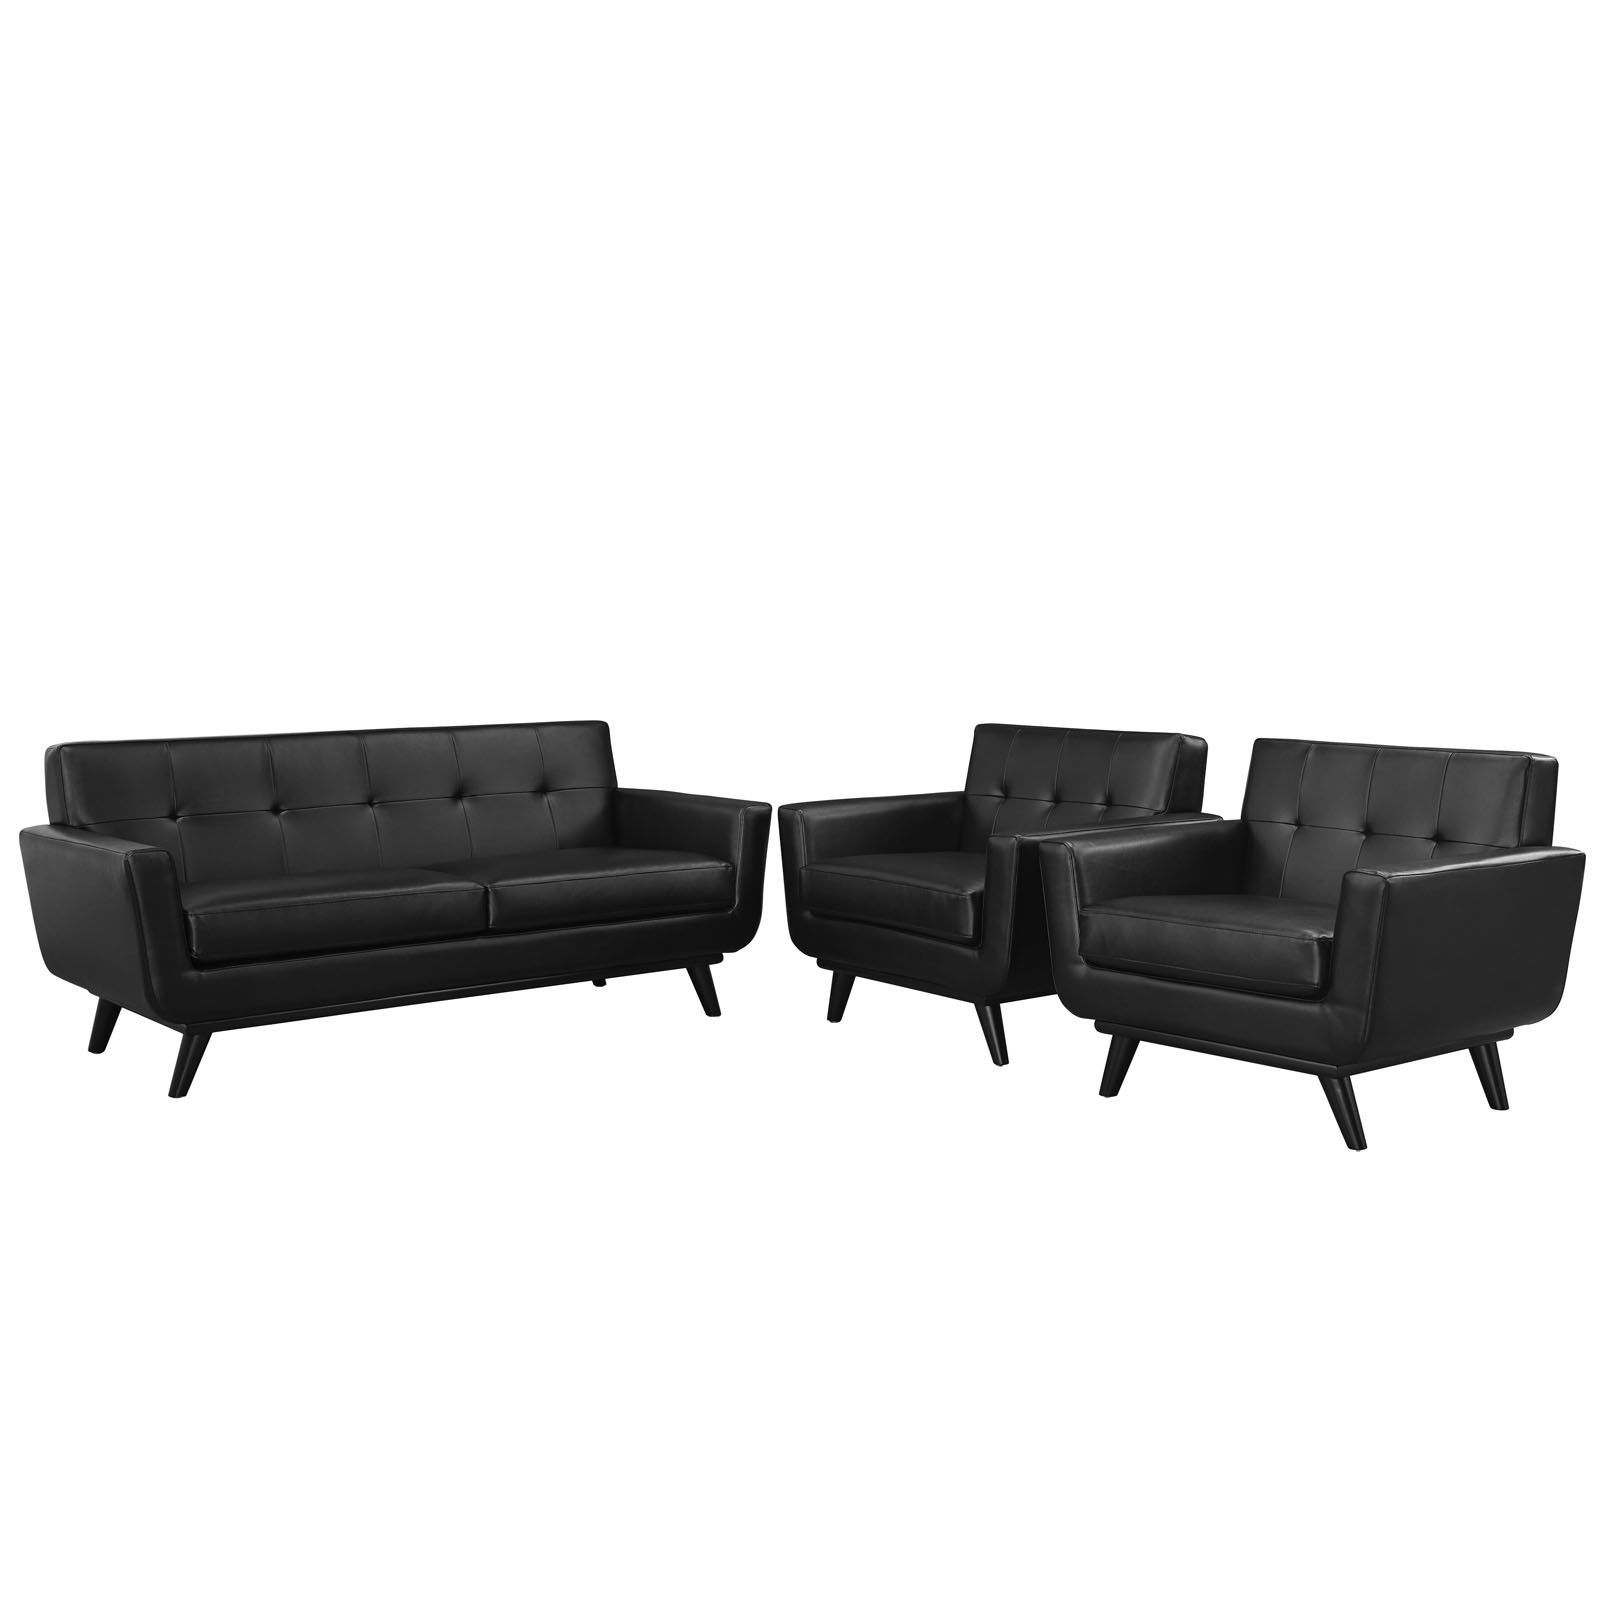 Engage 3 Piece Leather Living Room Set | Leather living room set ...